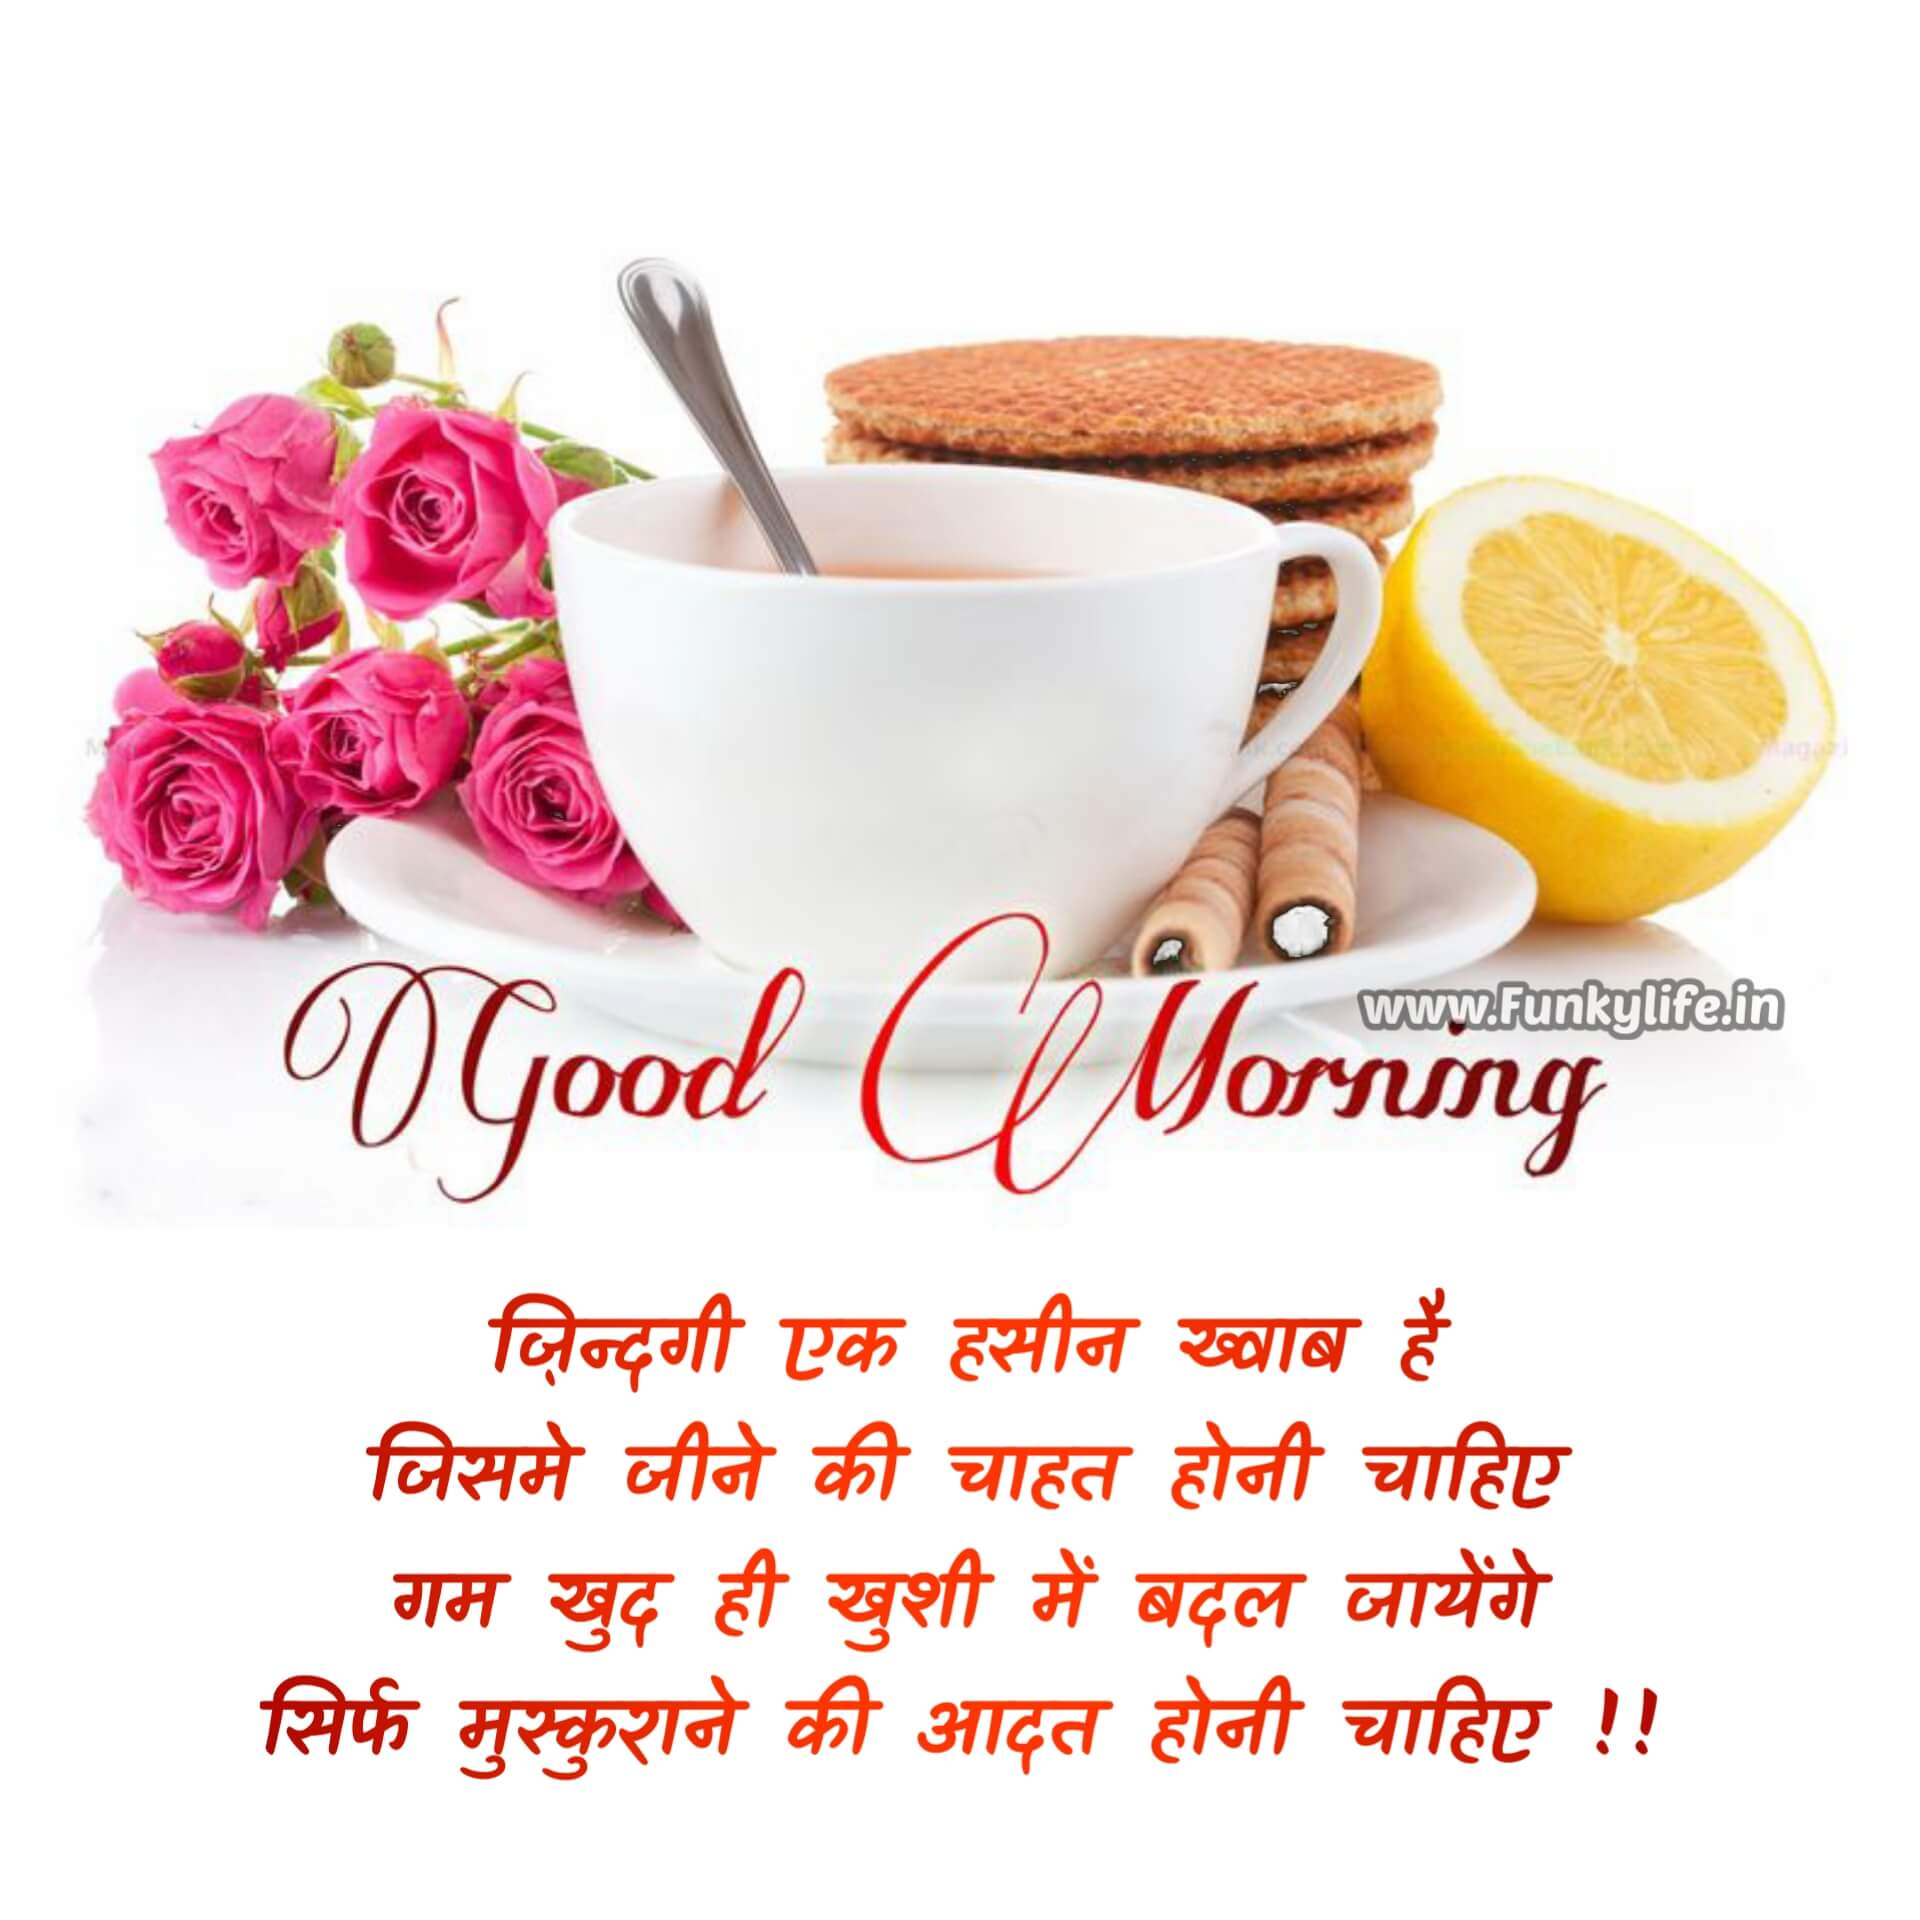 Positive good morning thoughts in Hindi